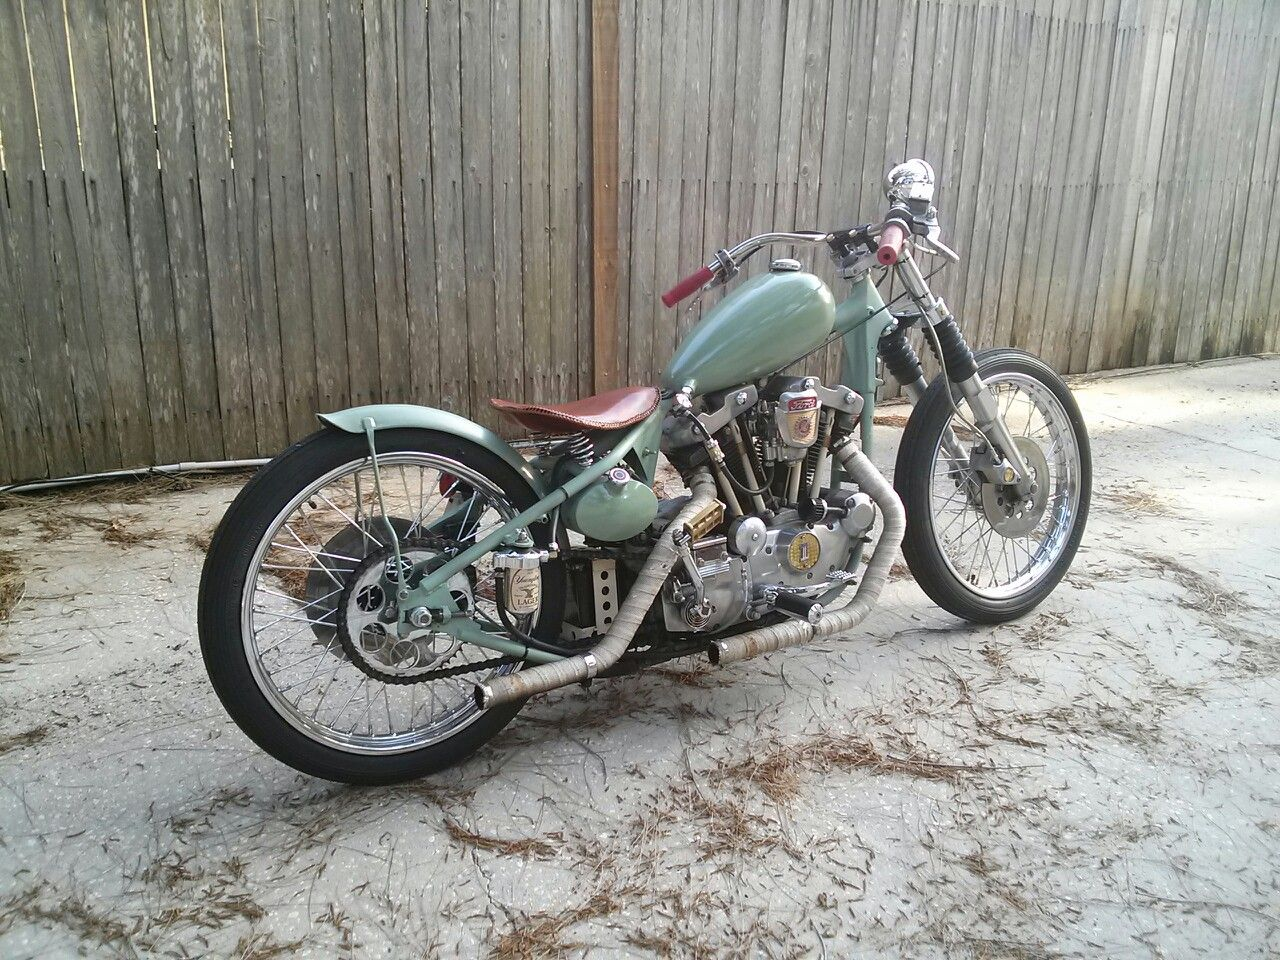 79 Ironhead Bobber With 21 Wheels Front And Rear By Dave Johnson In Clearwater Florida